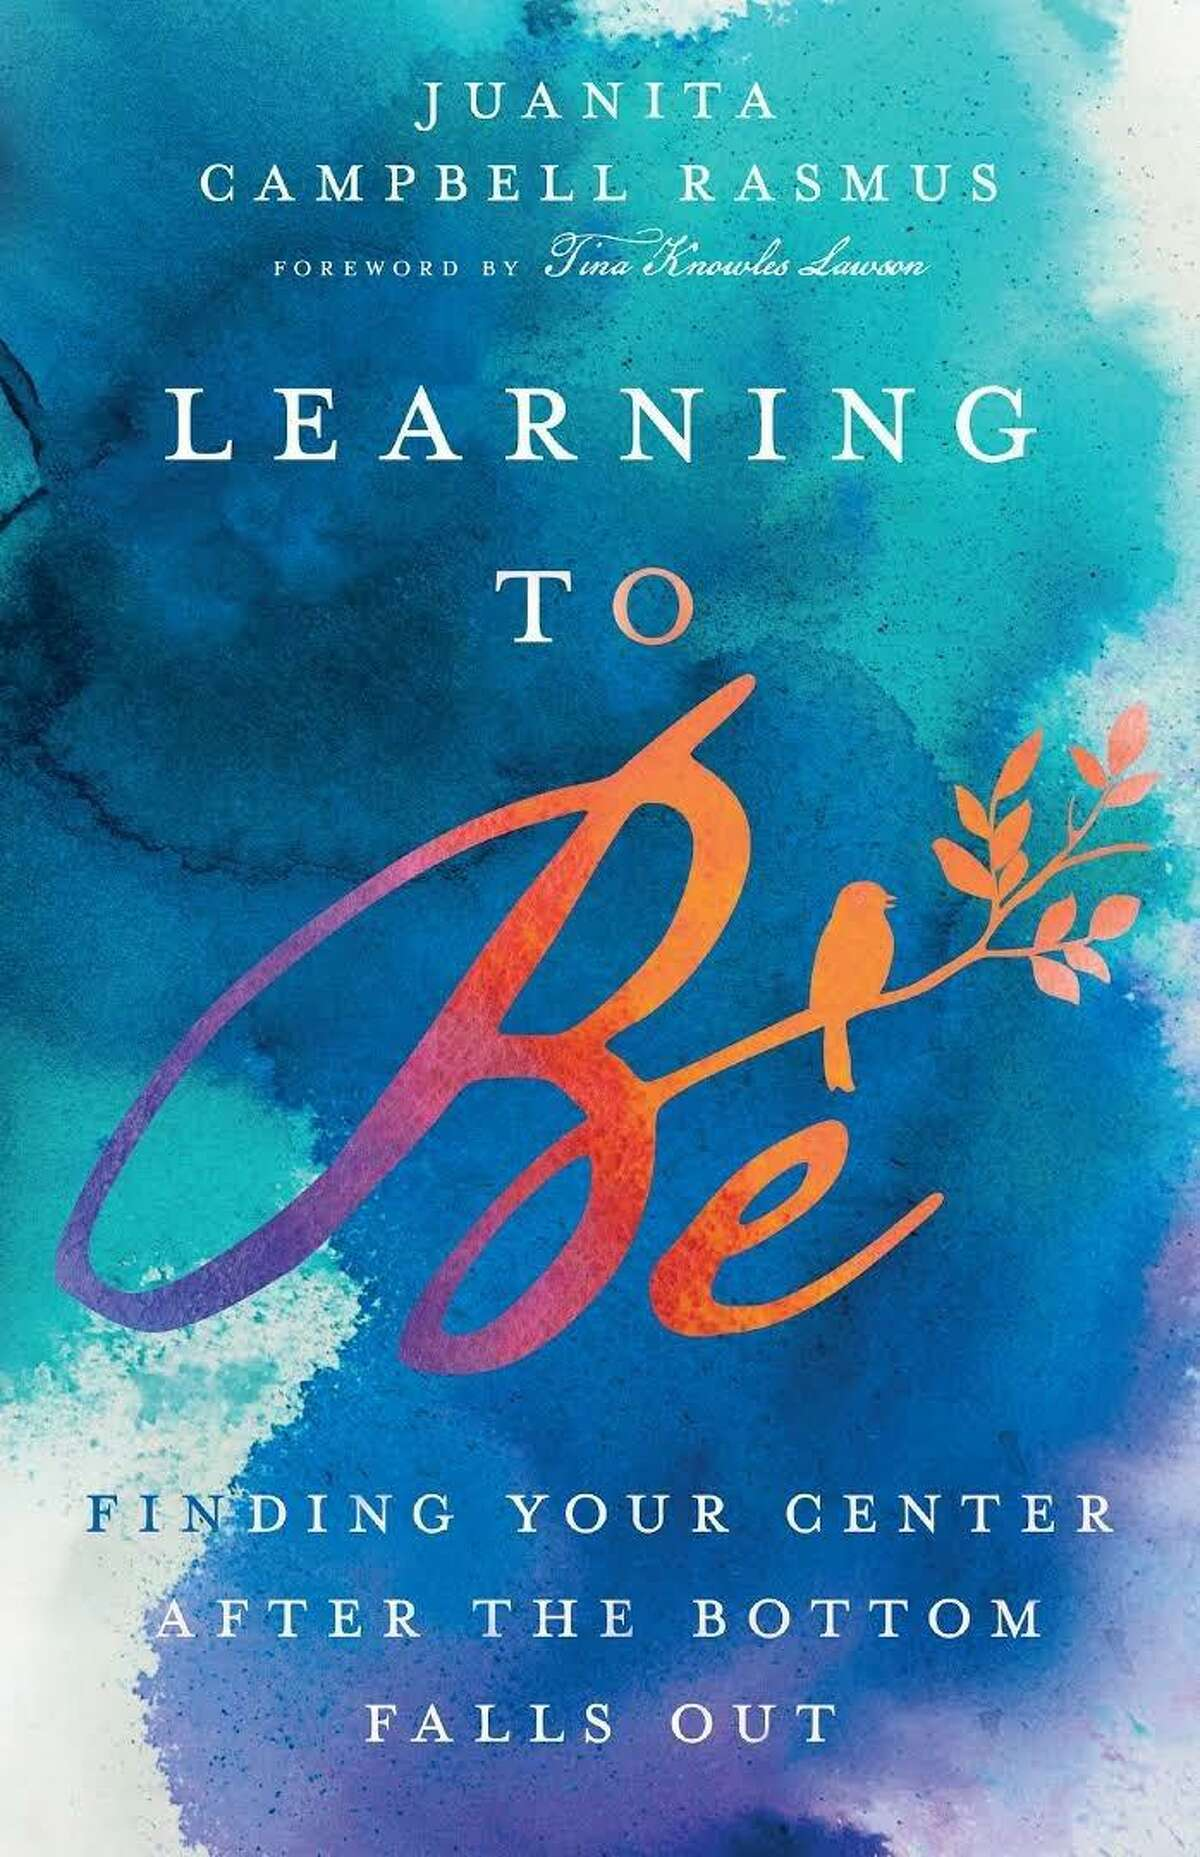 """""""Learning to Be: Finding Your Center After the Bottom Falls Out"""" (InterVarsity Press) by Juanita Cambell Rasmus"""